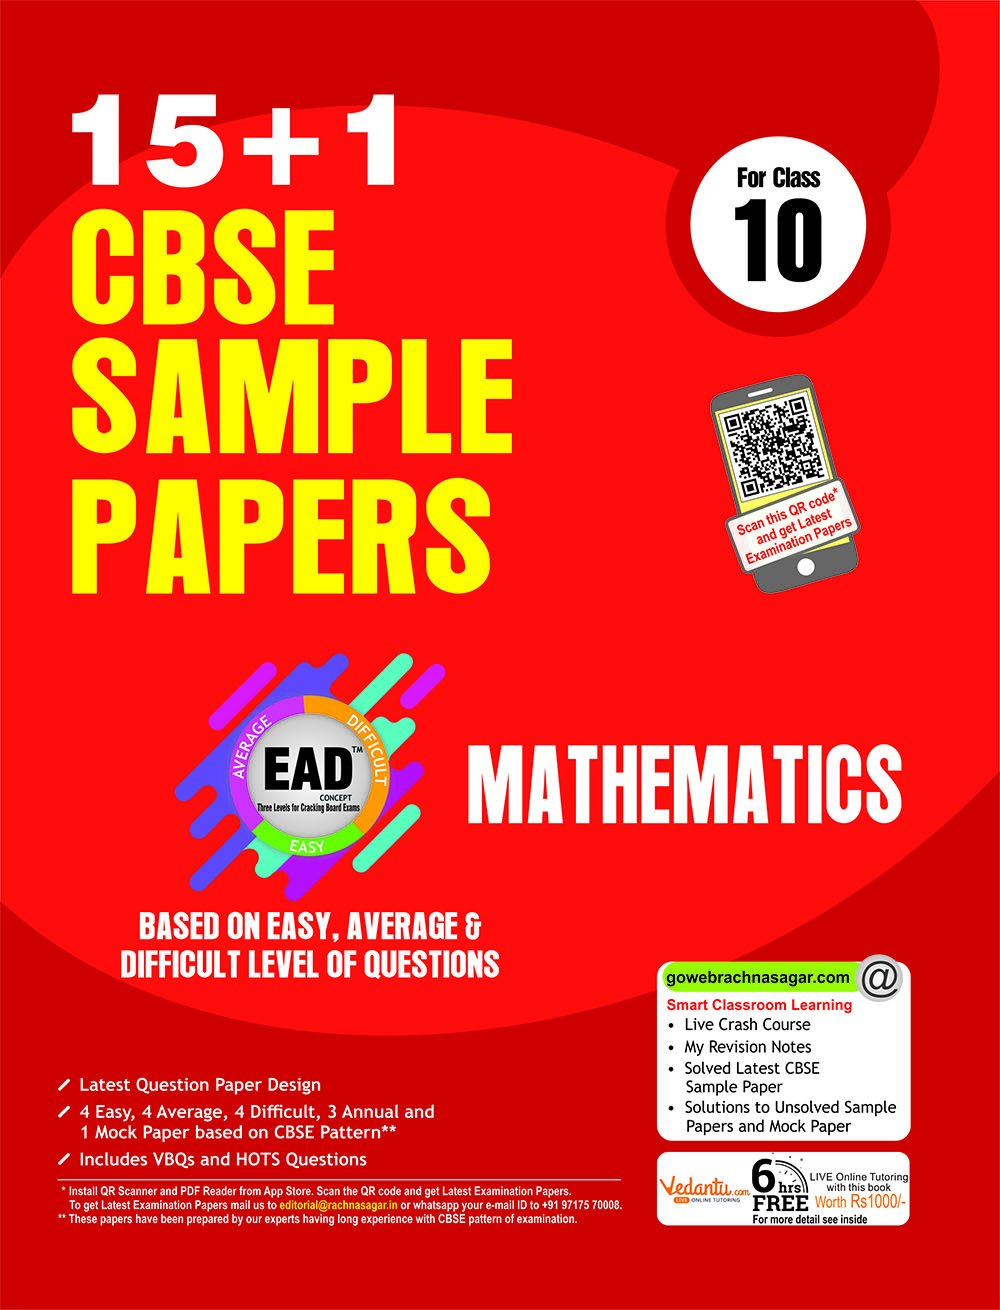 Together with cbse sample papers 151 for class 10 ead mathematics together with cbse sample papers 151 for class 10 ead mathematics with mock paper for 2018 exam amazon lalit gupta books fandeluxe Choice Image